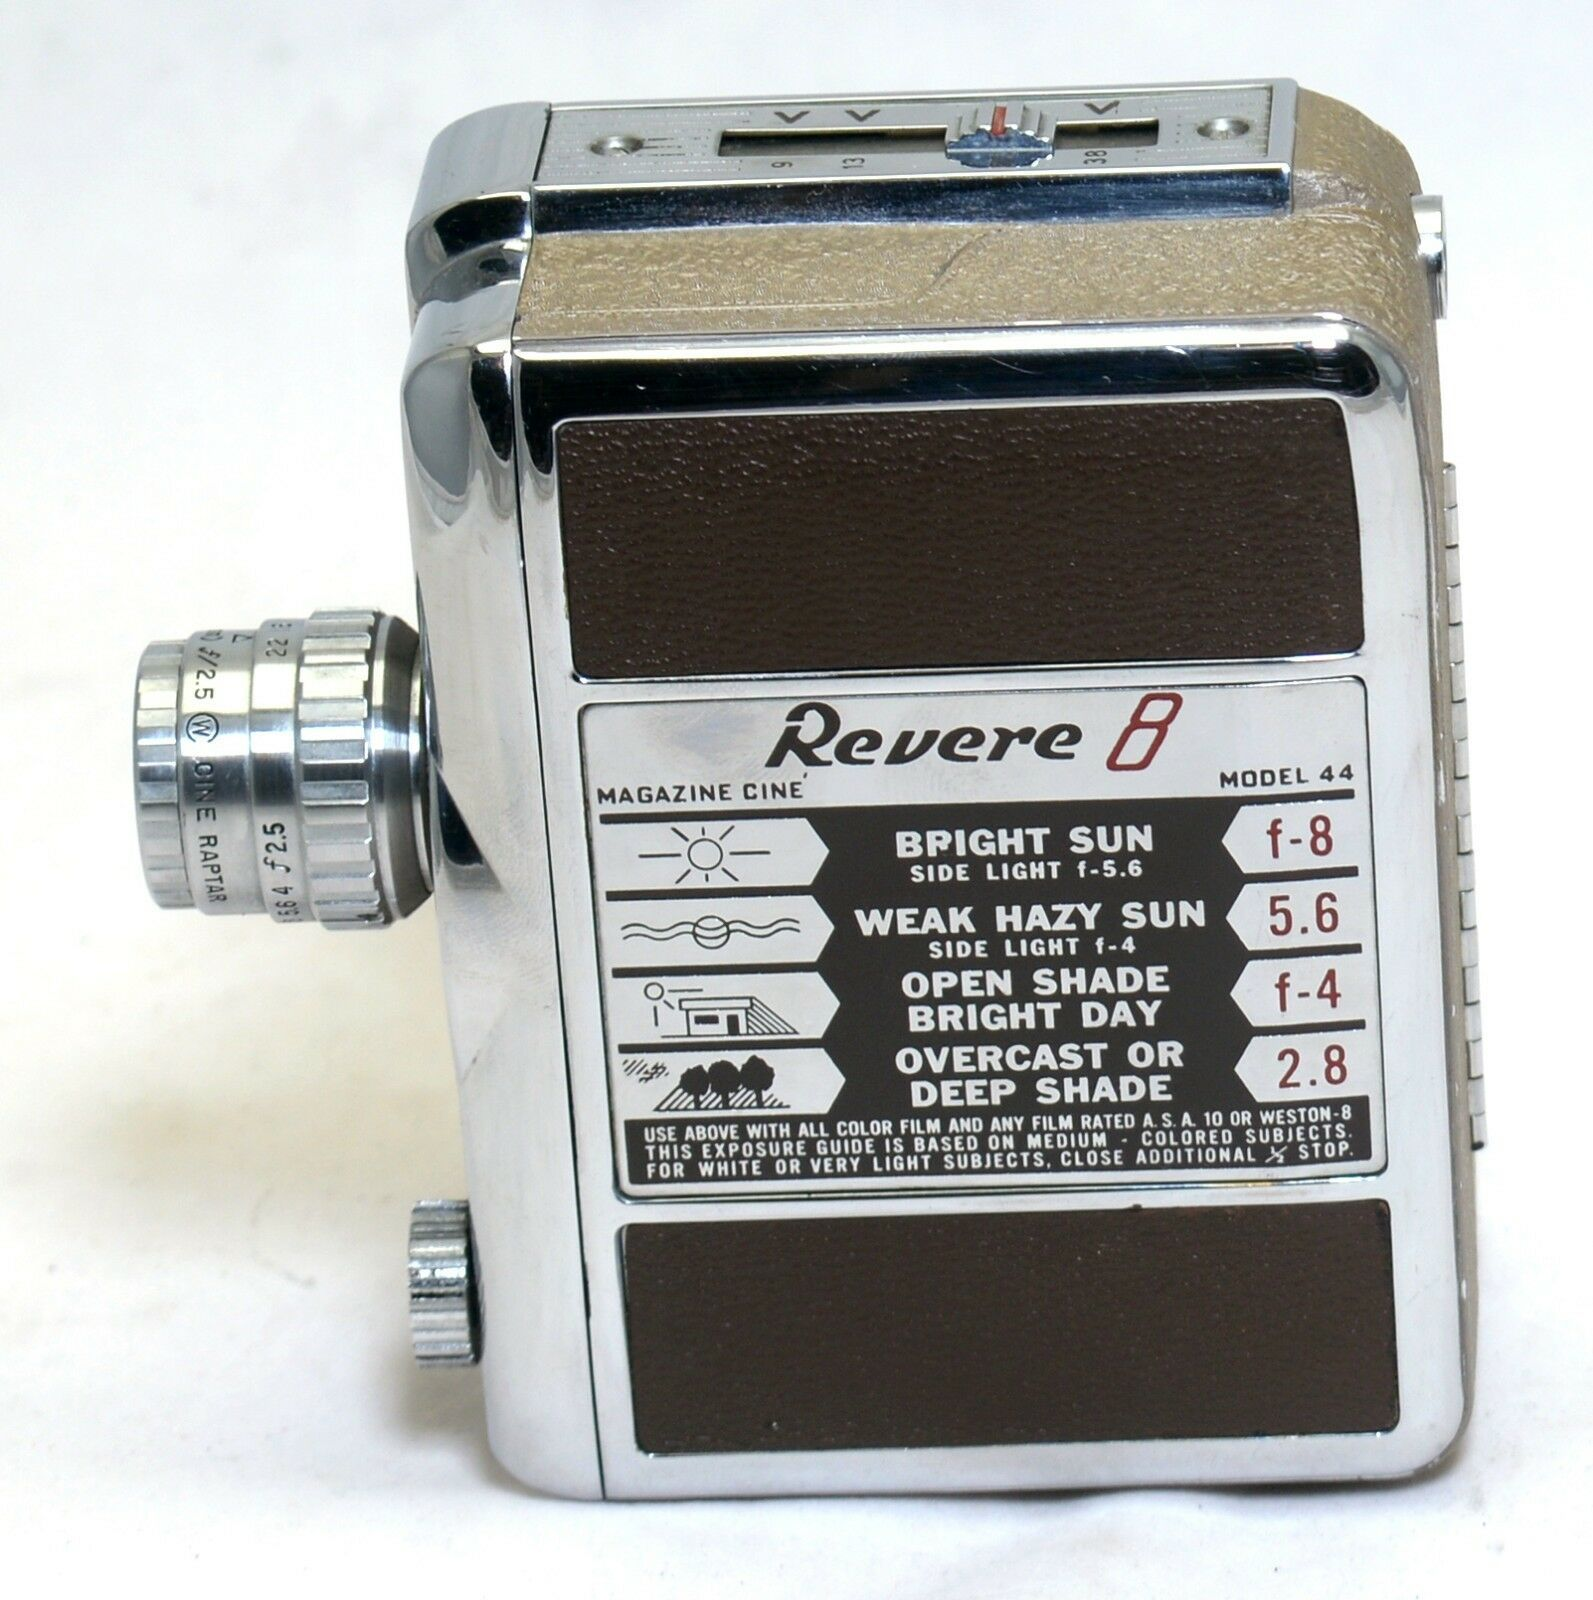 REVERE 8 Model 44 Vintage Movie 8mm Film Magazine CINE Camera Wollensak Lens USA